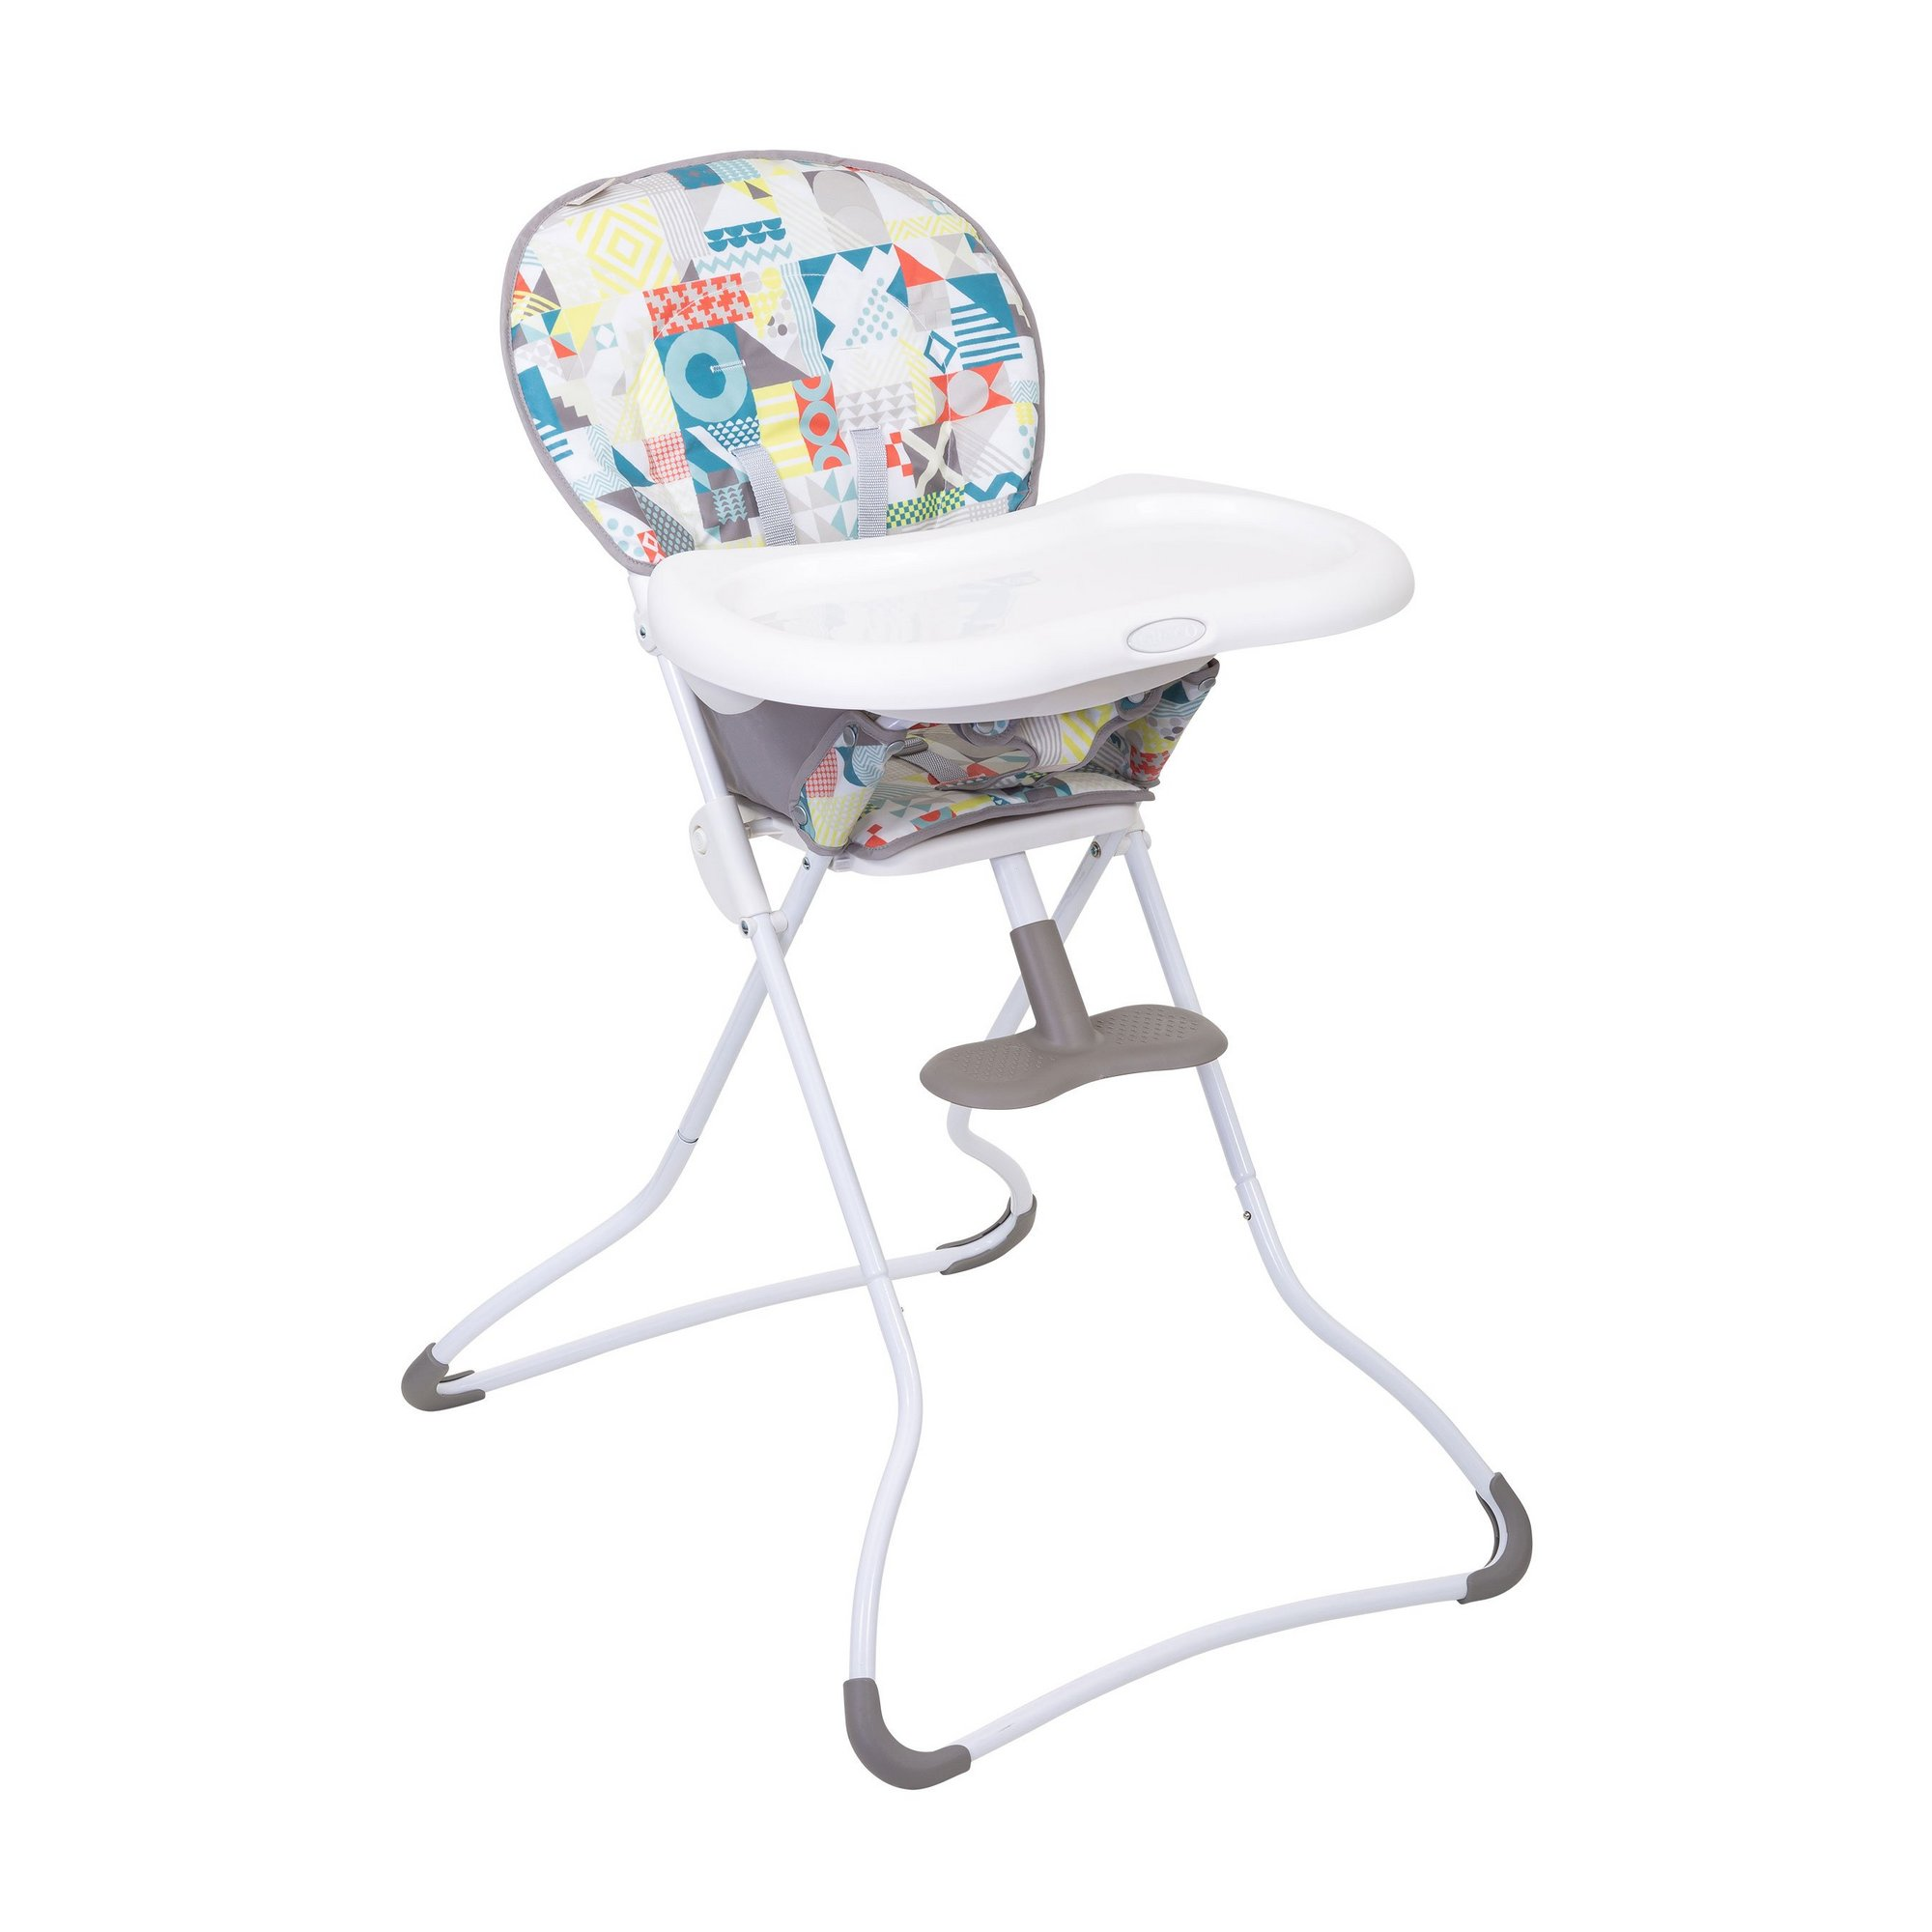 Image of Graco Snack N Stow Patchwork Highchair